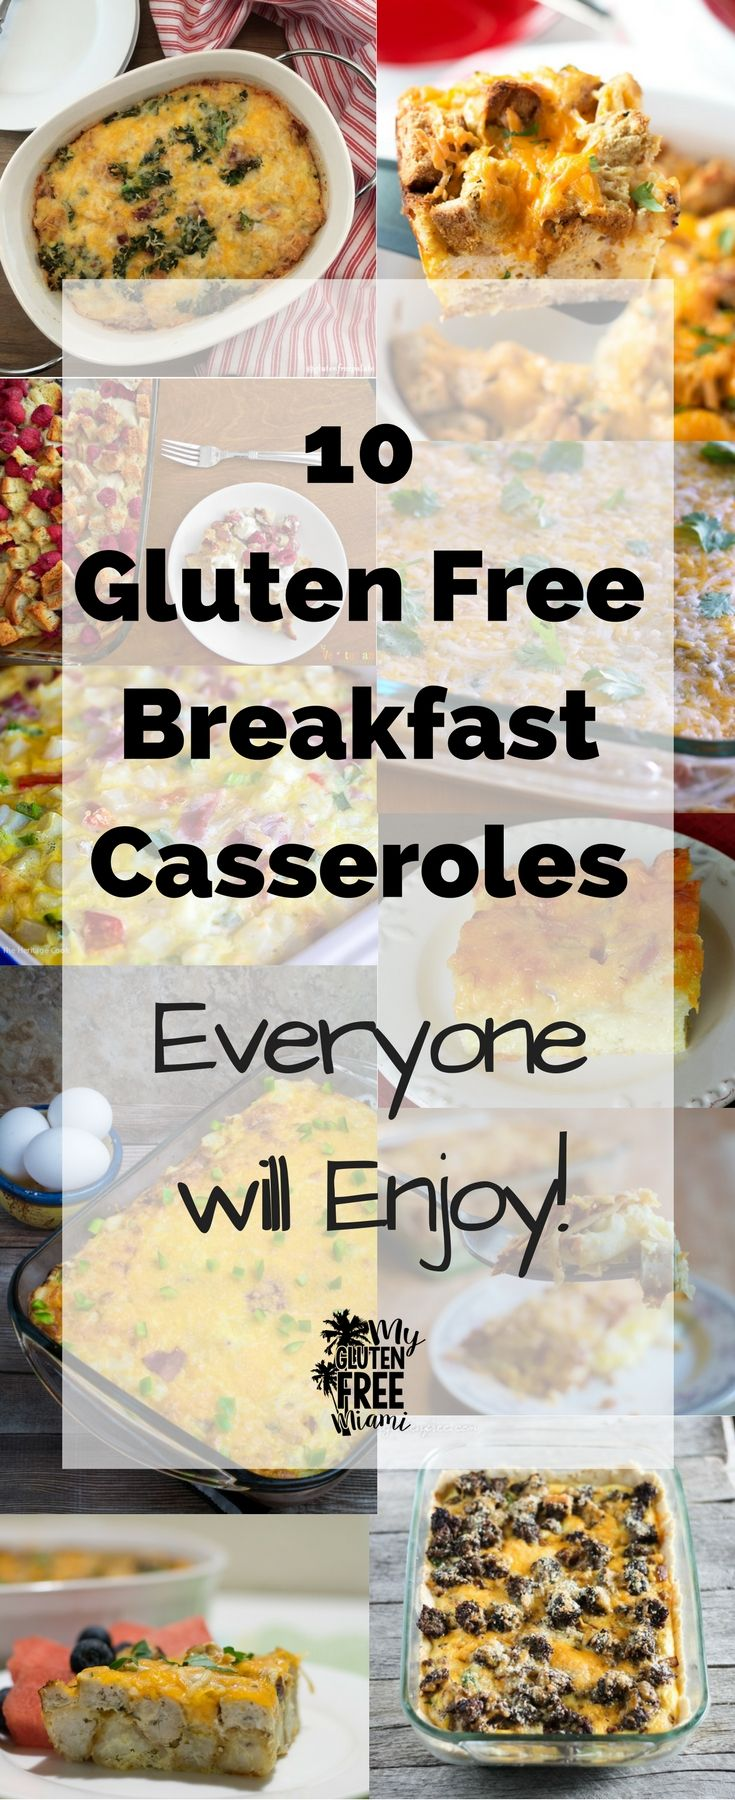 10 Gluten Free Breakfast Casseroles Everyone Will Love